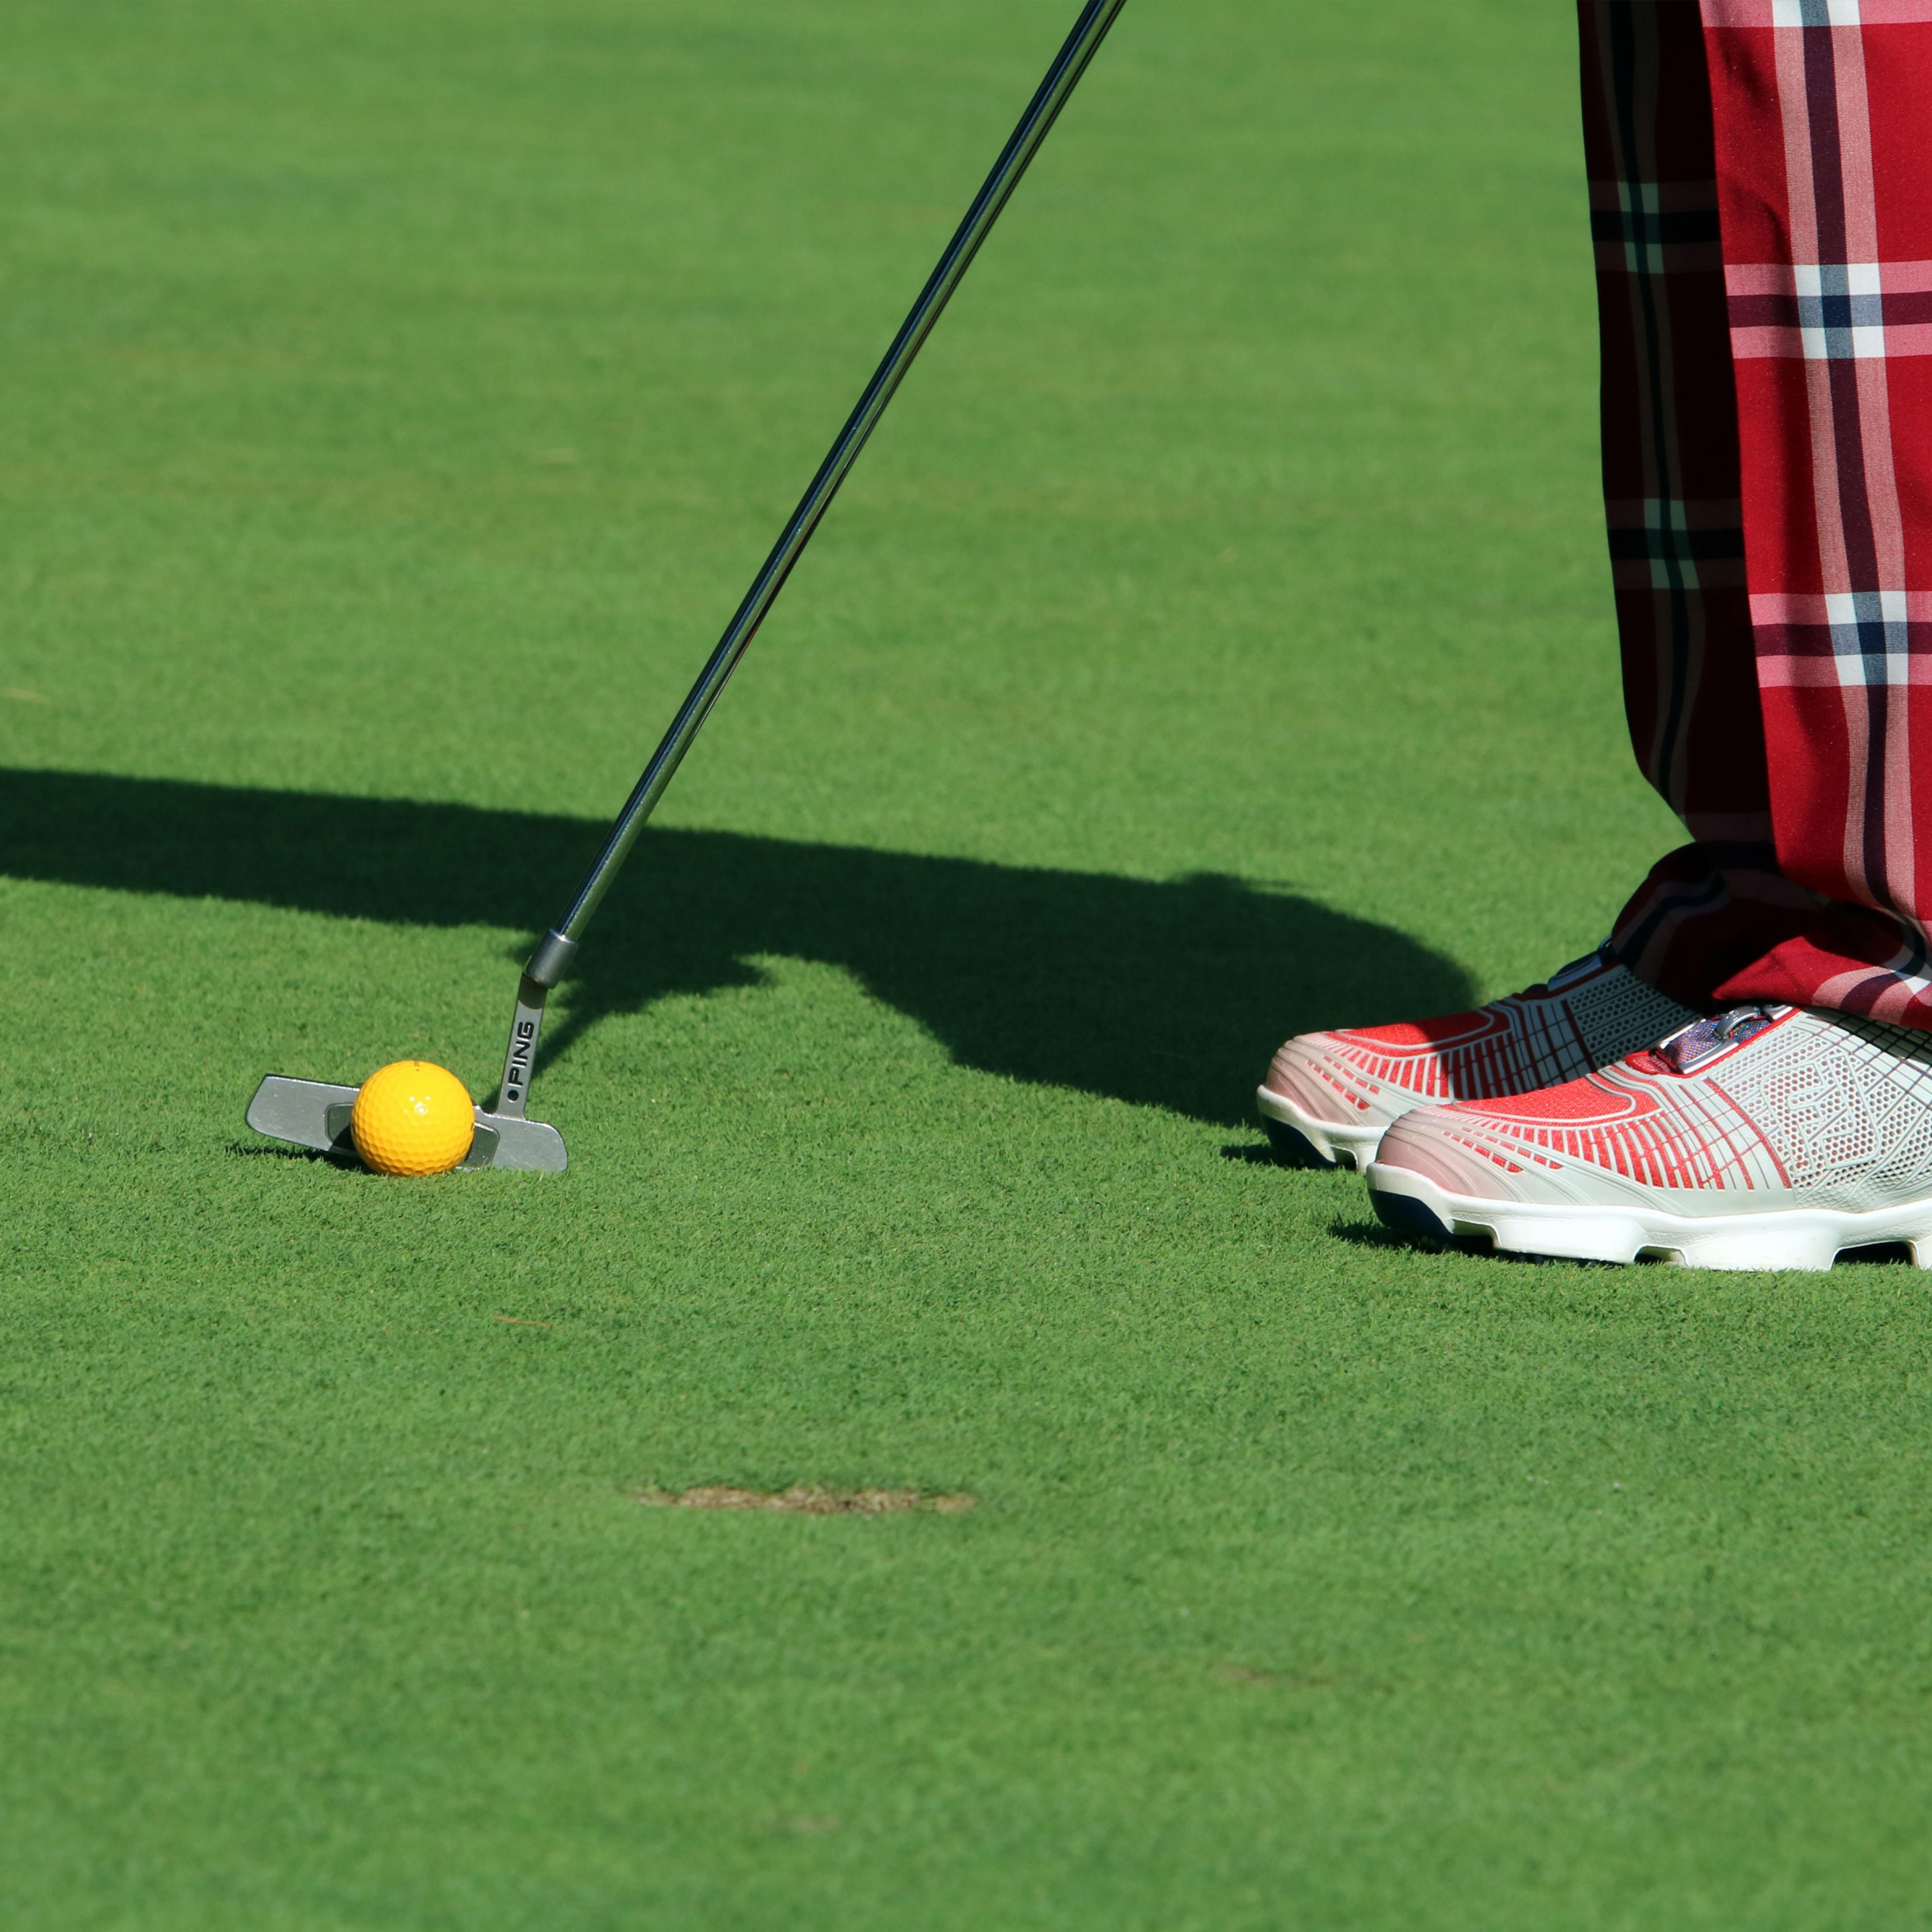 golf player on putting greens synthetic turf